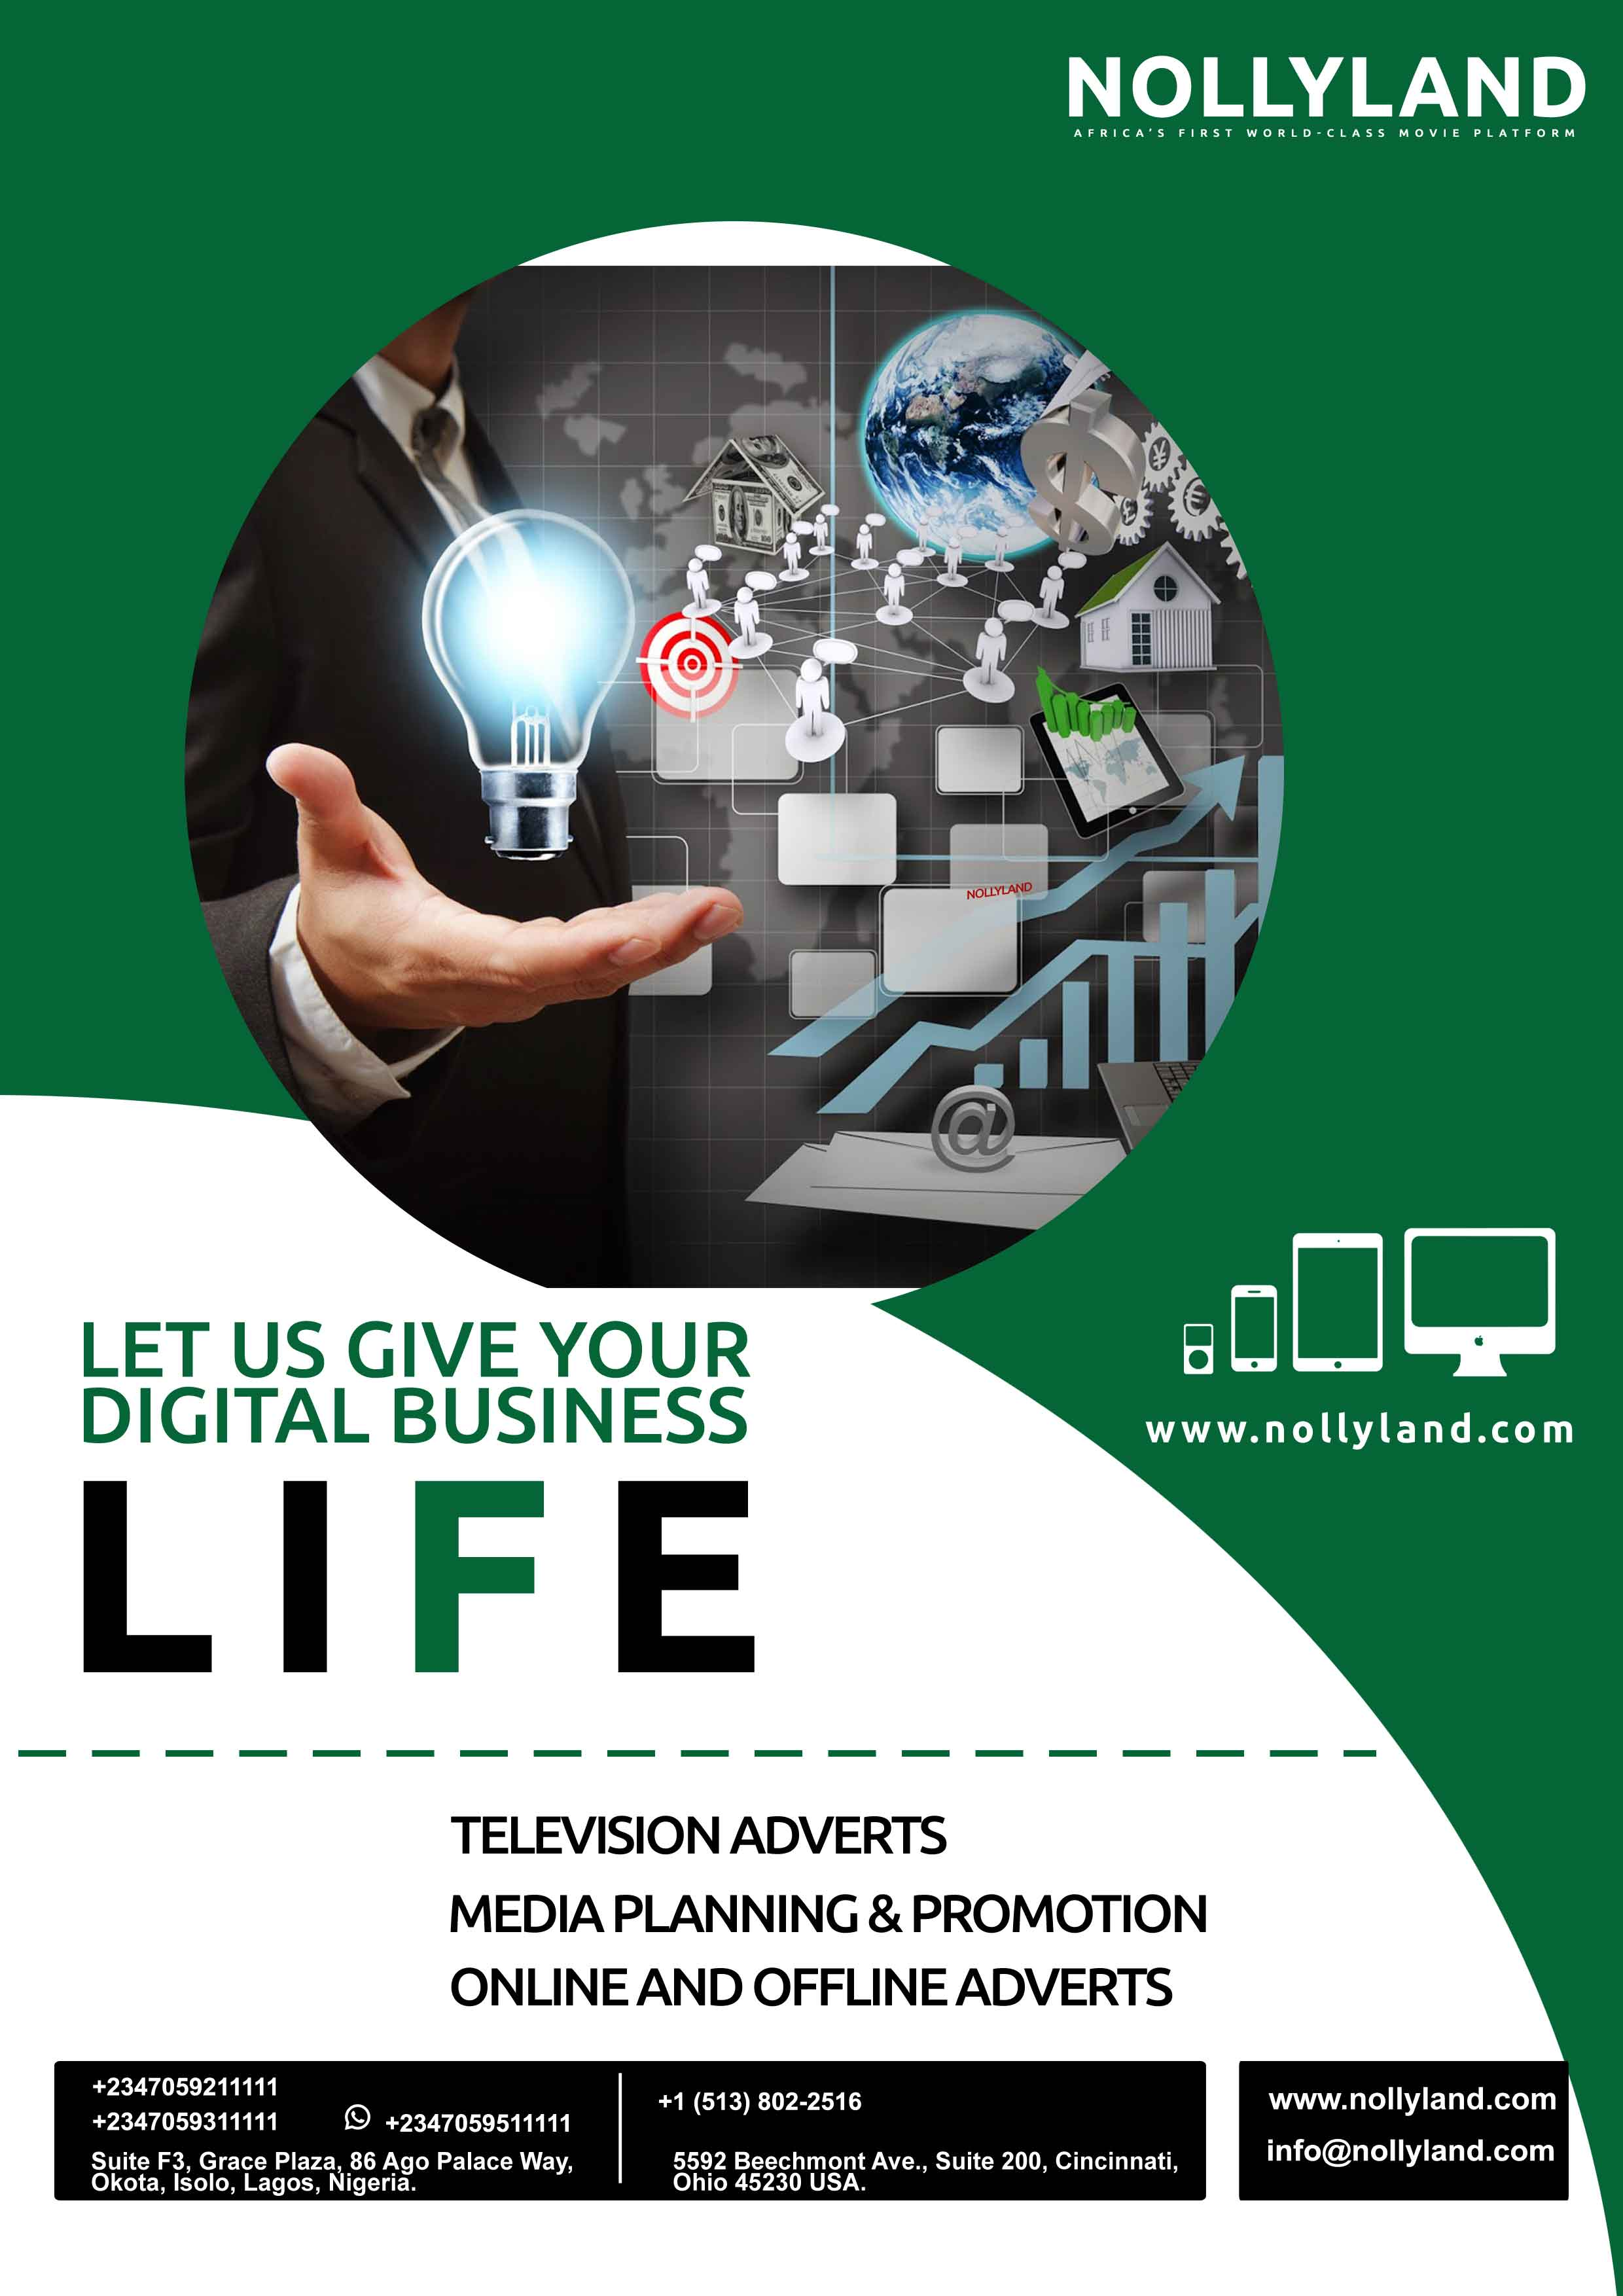 NollyLand Life TV Media